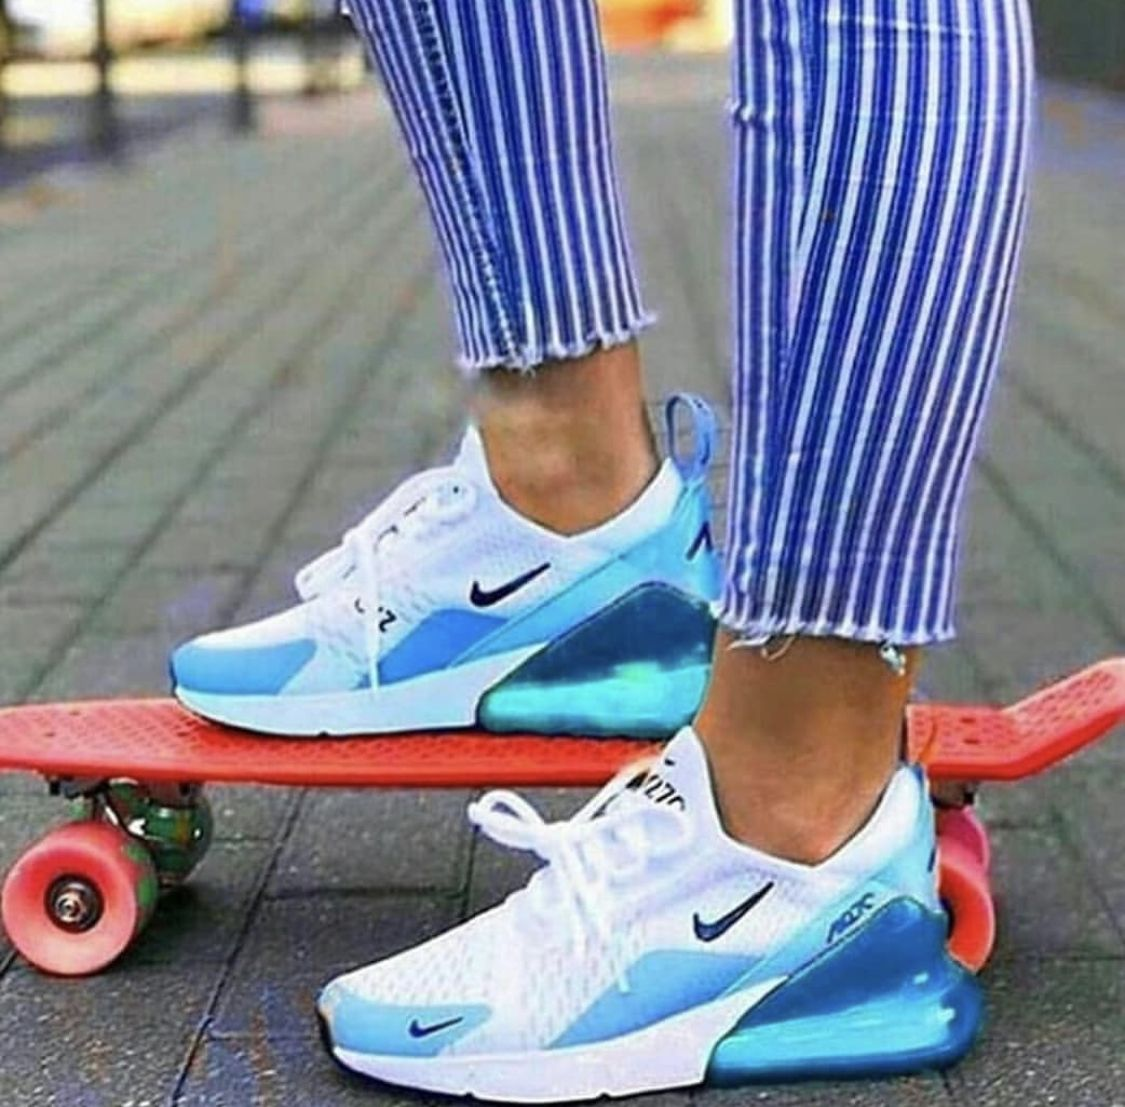 Pin by Astrid Carius on Nike Air Max | Cute nike shoes, Nike shoes ...